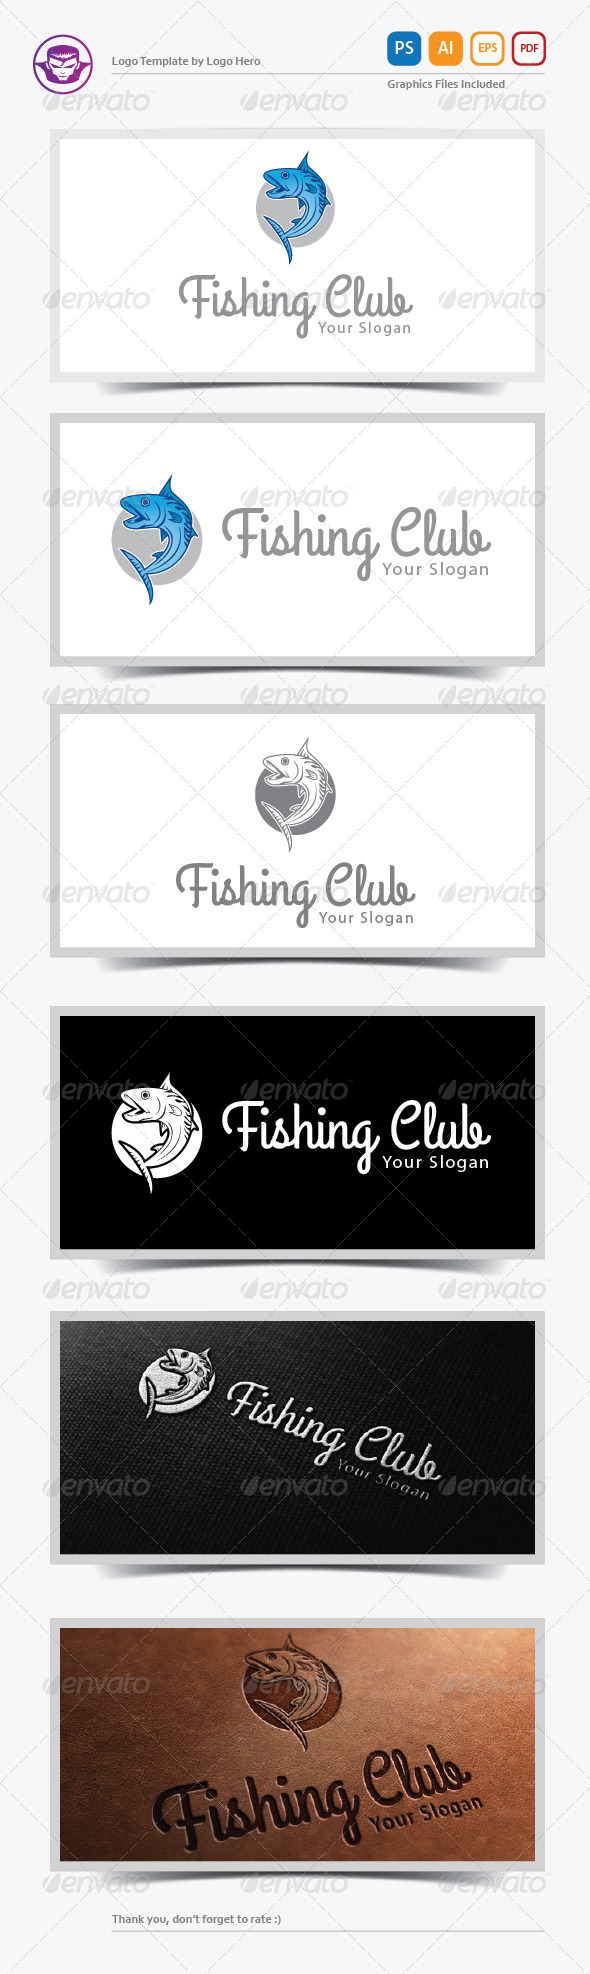 GraphicRiver Fishing Club Logo Template 6383185